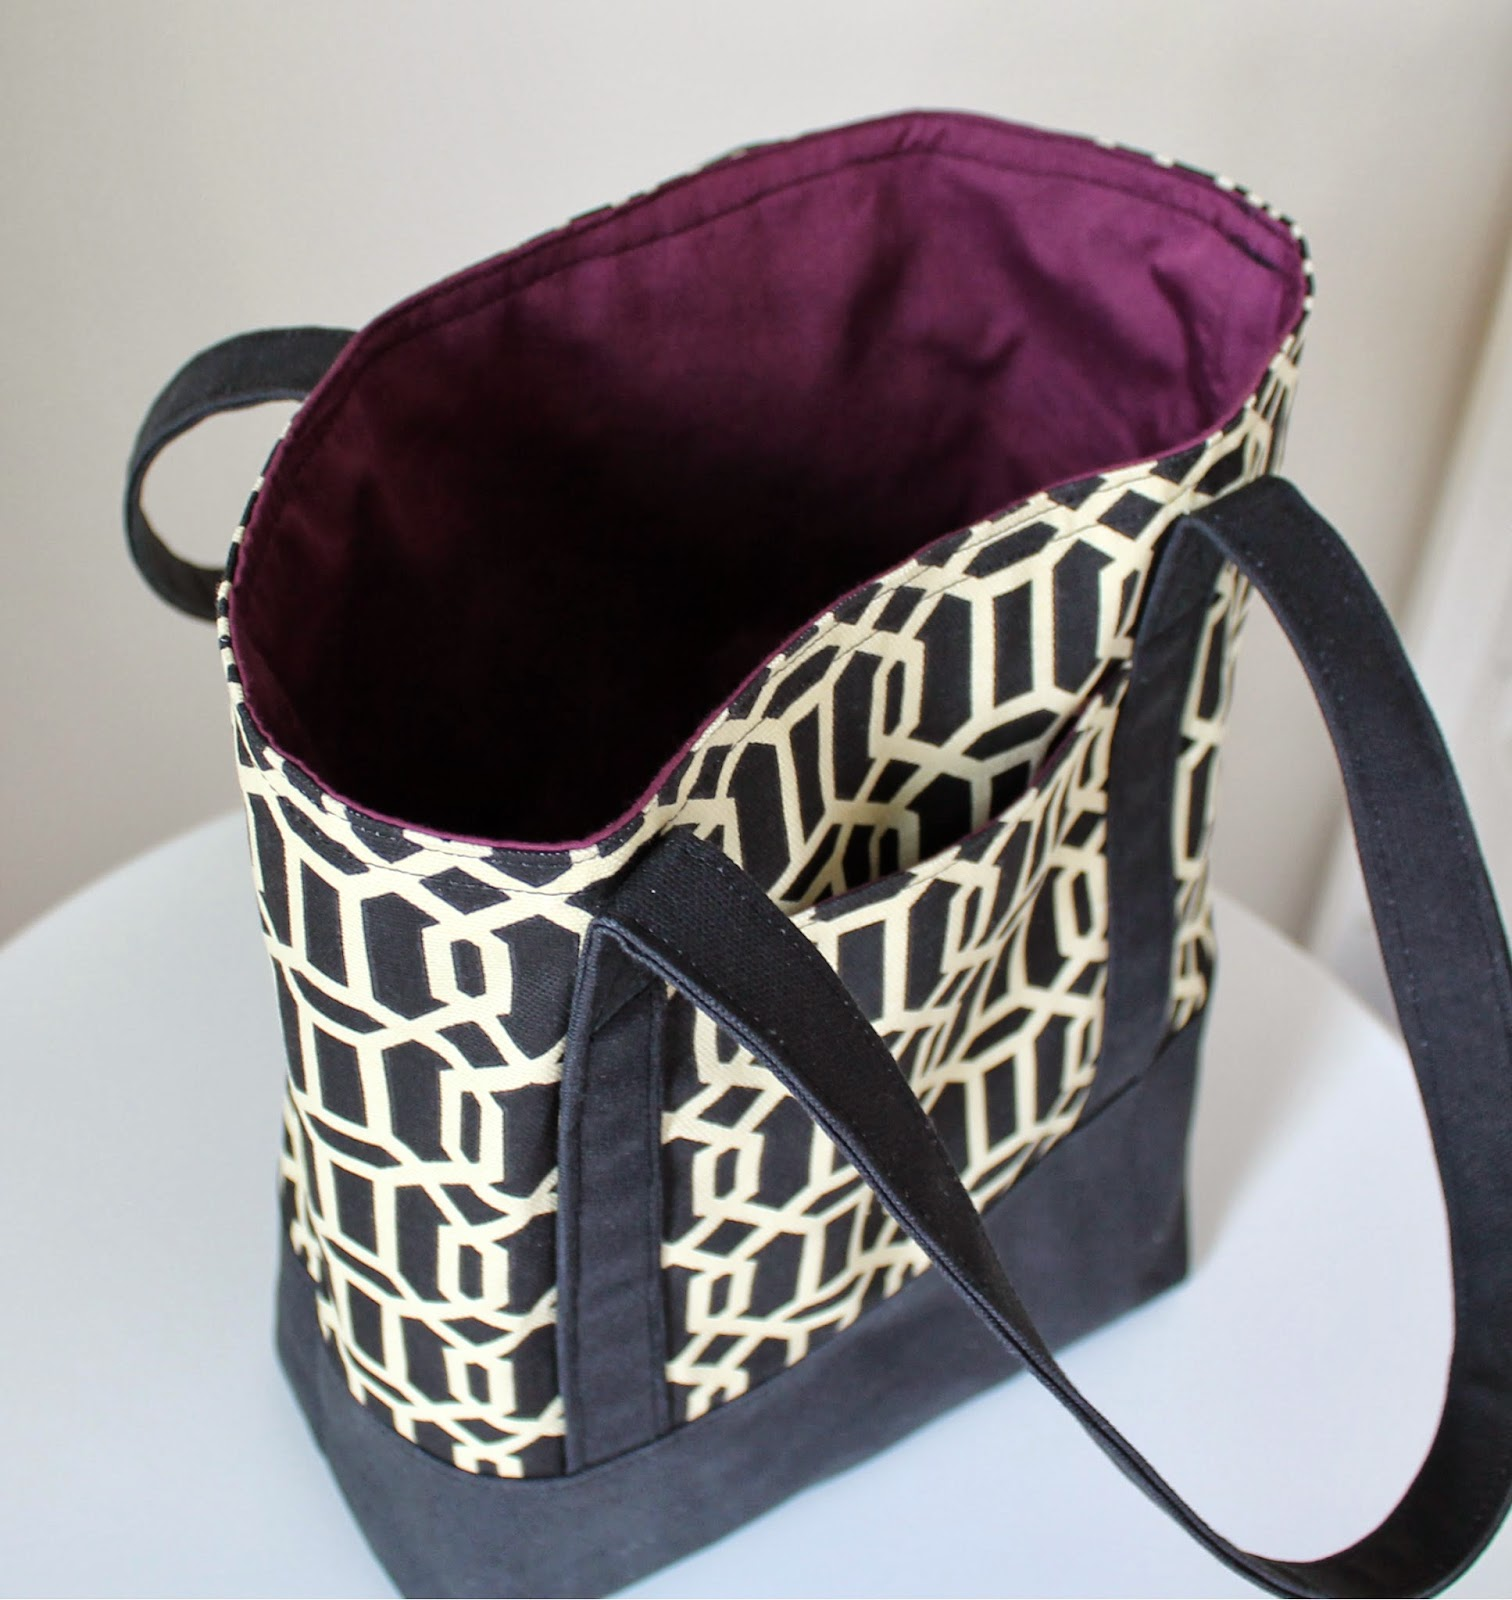 TUTORIAL: Lined Canvas Tote